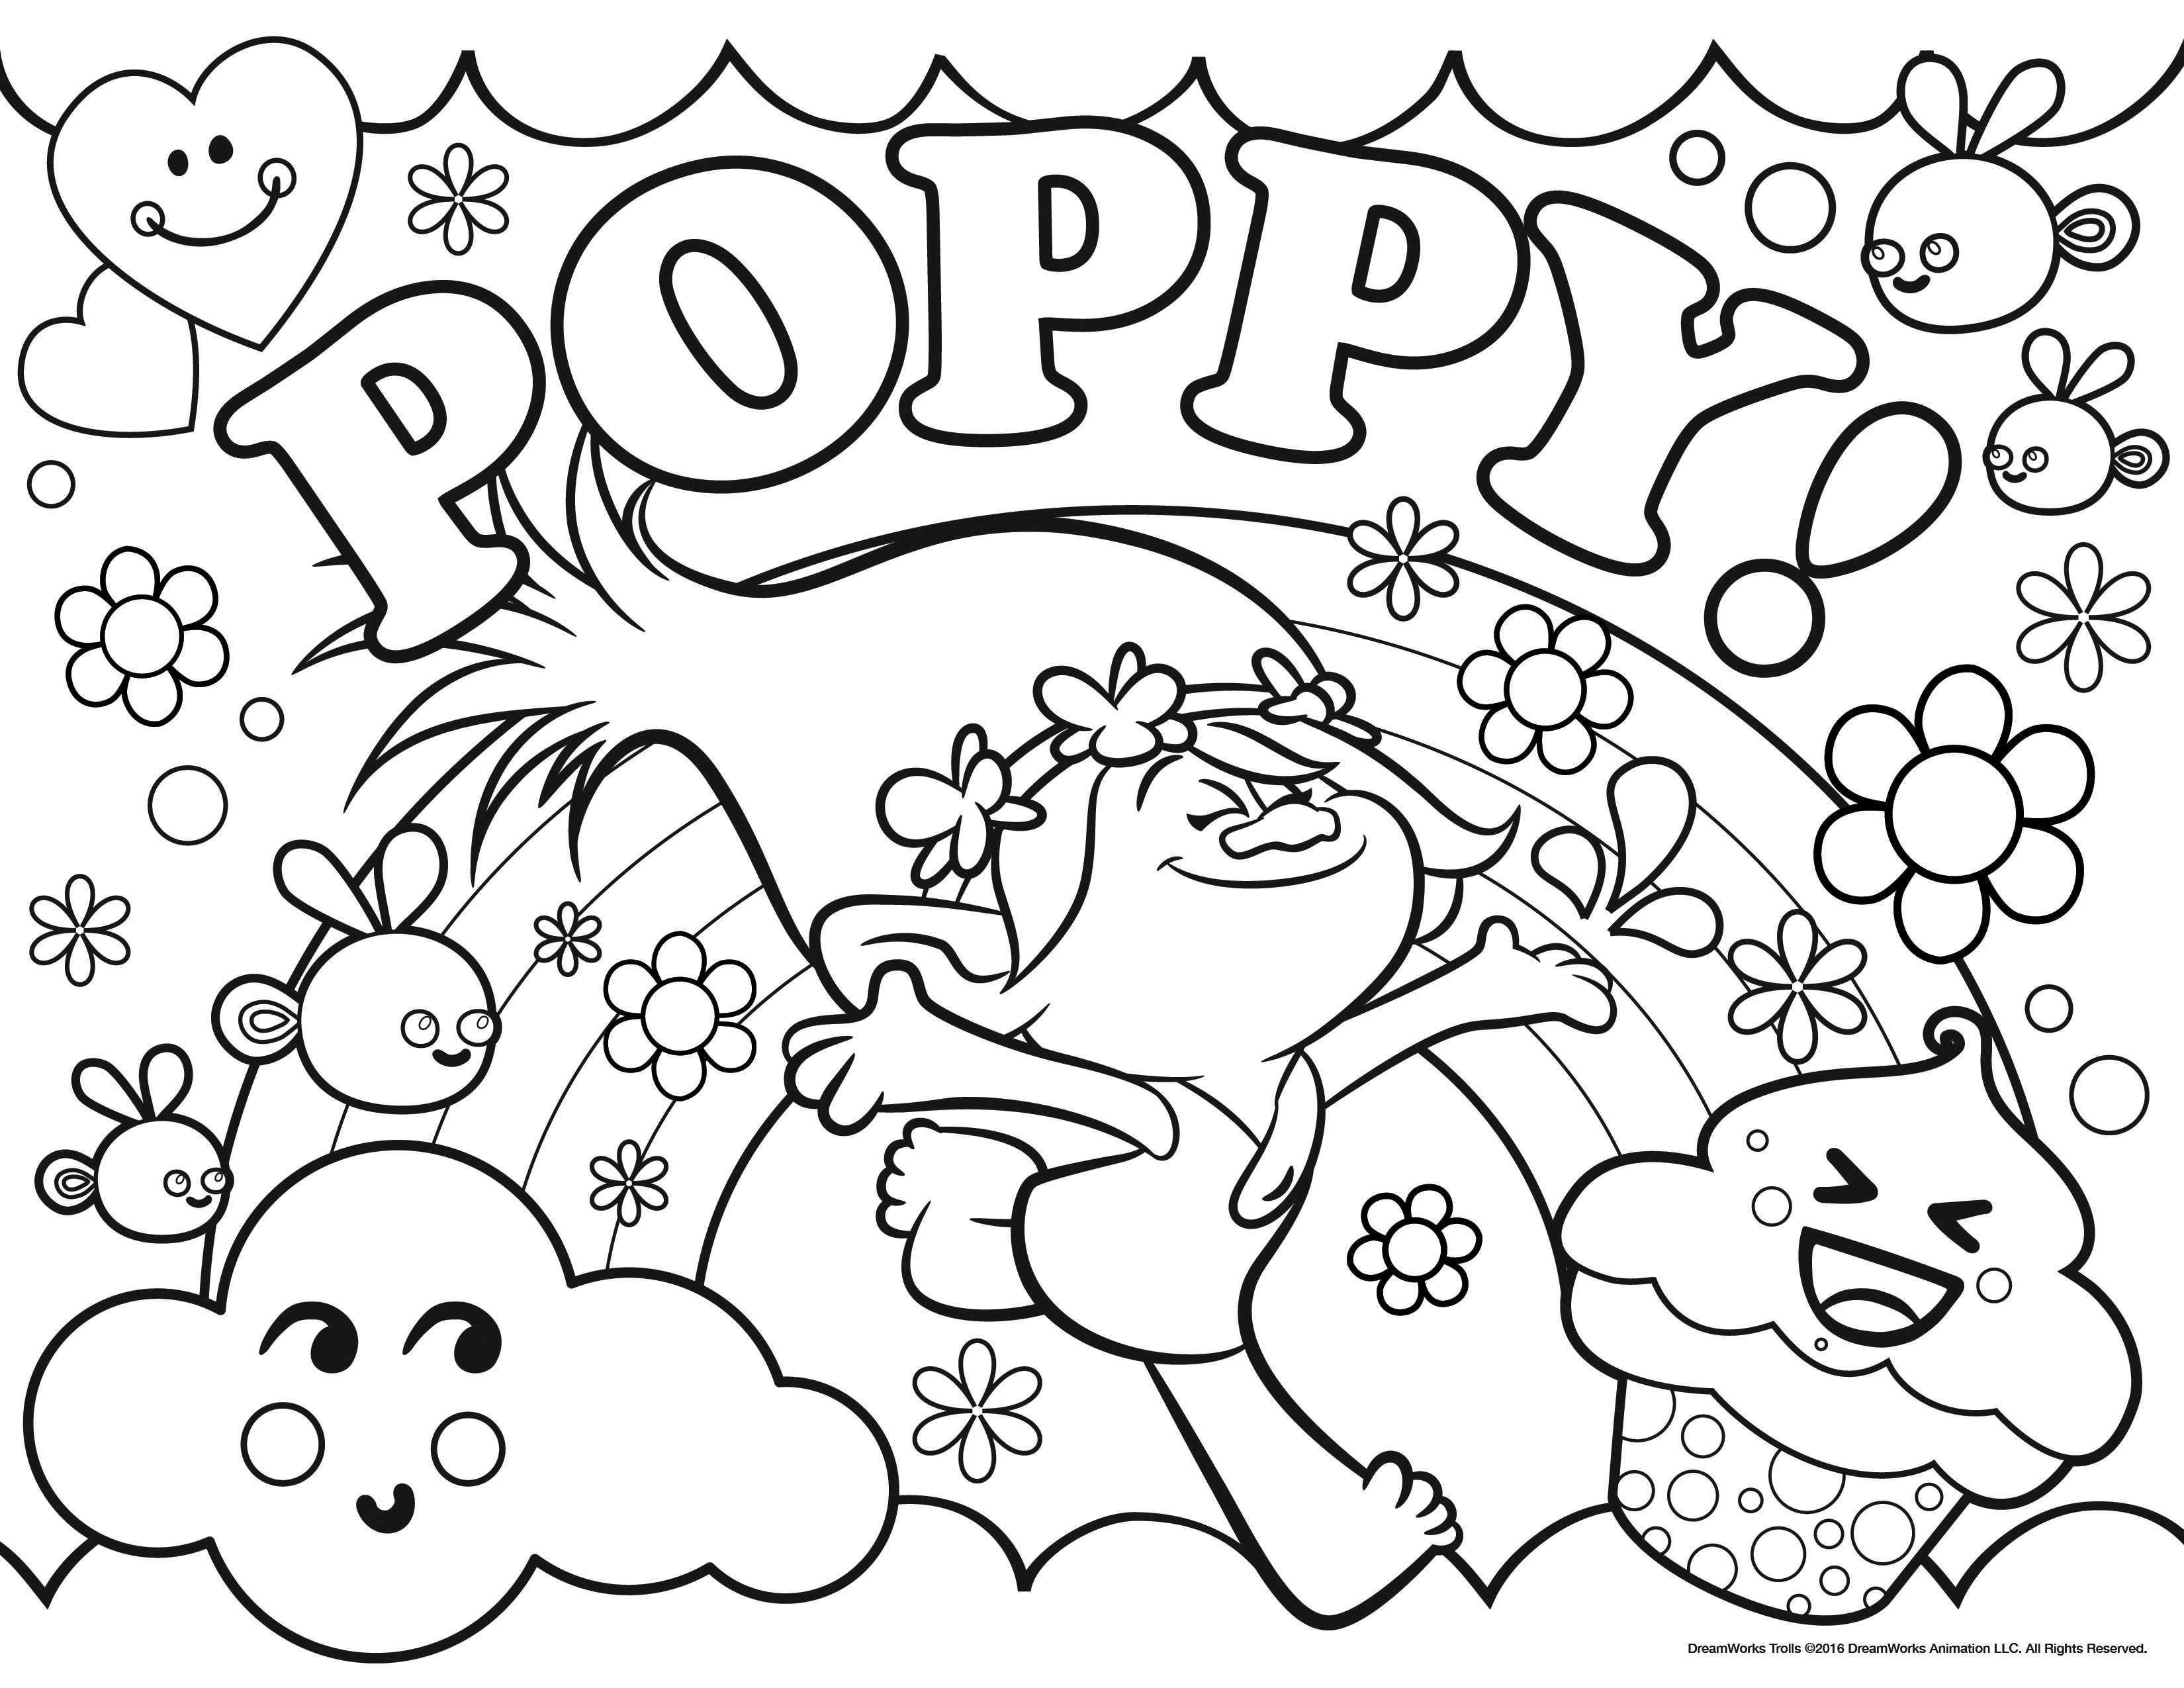 Trolls Poppy Coloring Pages Printable And Book To Print For Free Find More Online Kids Adults Of